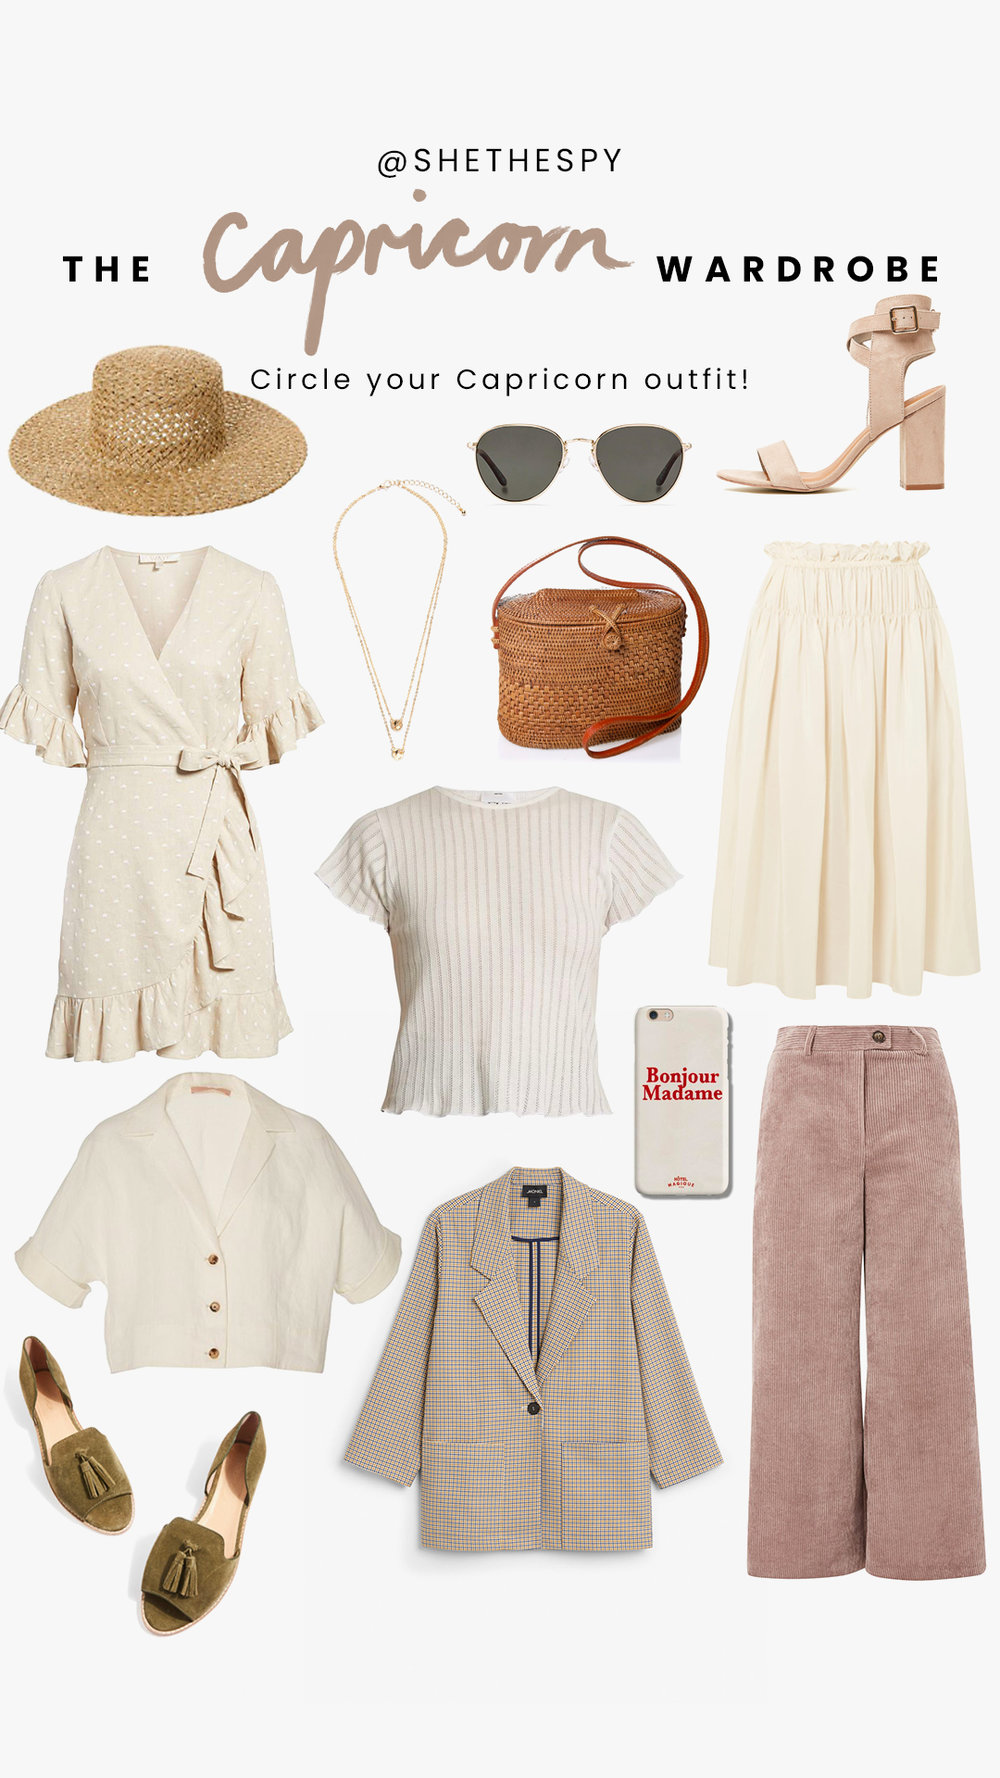 Shop Capricorn - Hat: Lack of ColorNecklace: UnknownSunglasses: Bailey NelsonHeels: TherapyDress: NordstromStripe top: AgatheSkirt: Jill SanderBag: Street LevelPhone Case: The DairyBlouse: UnknownBlazer: MonkiPants: TopshopFlats: Topshop